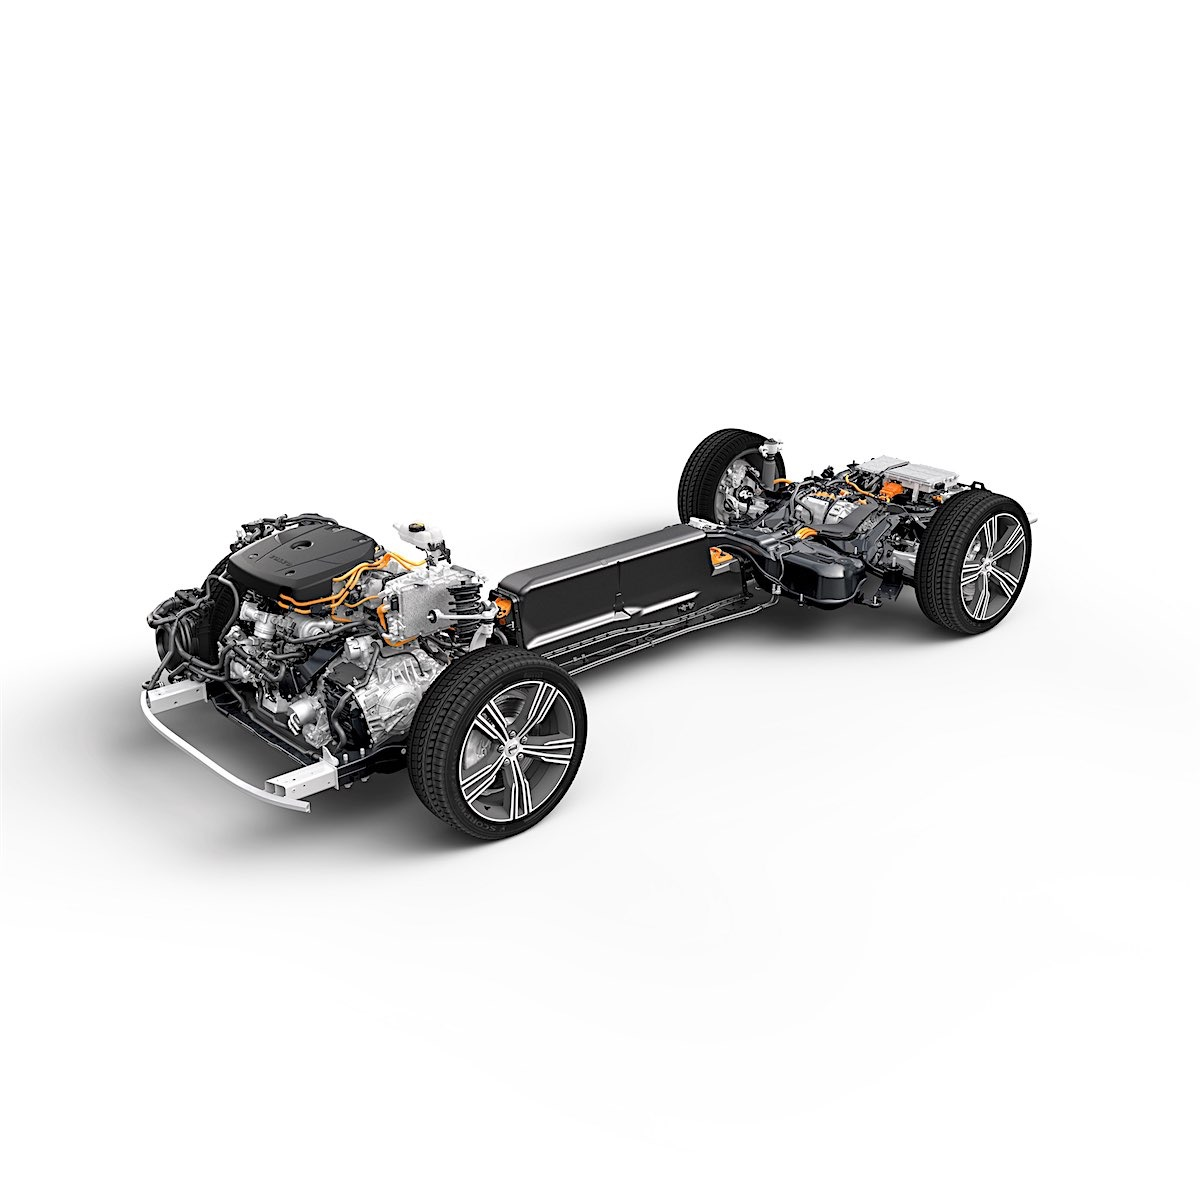 230743_new_volvo_s60_t8_plug-in_hybrid_chassis-resized.jpg